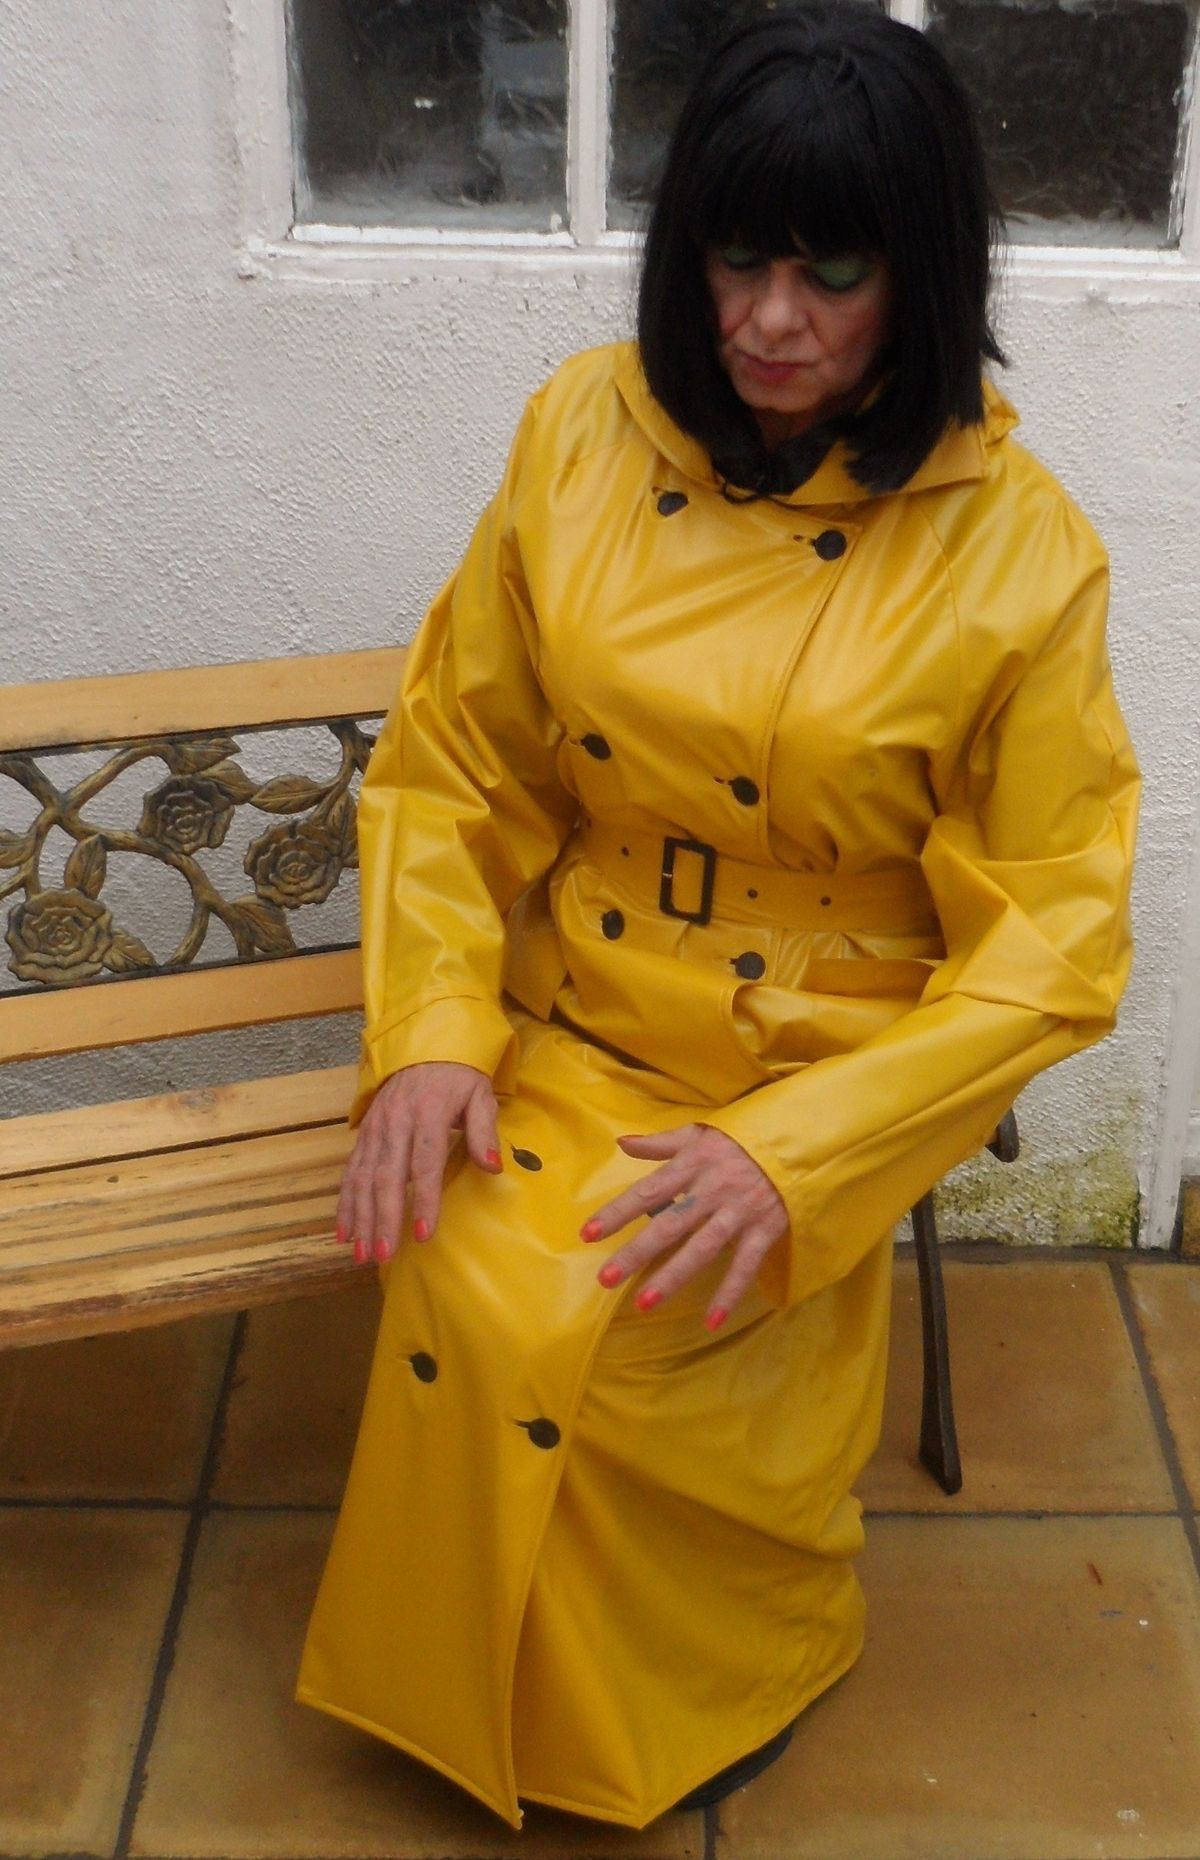 Wearing a Yellow Rubber Raincoat